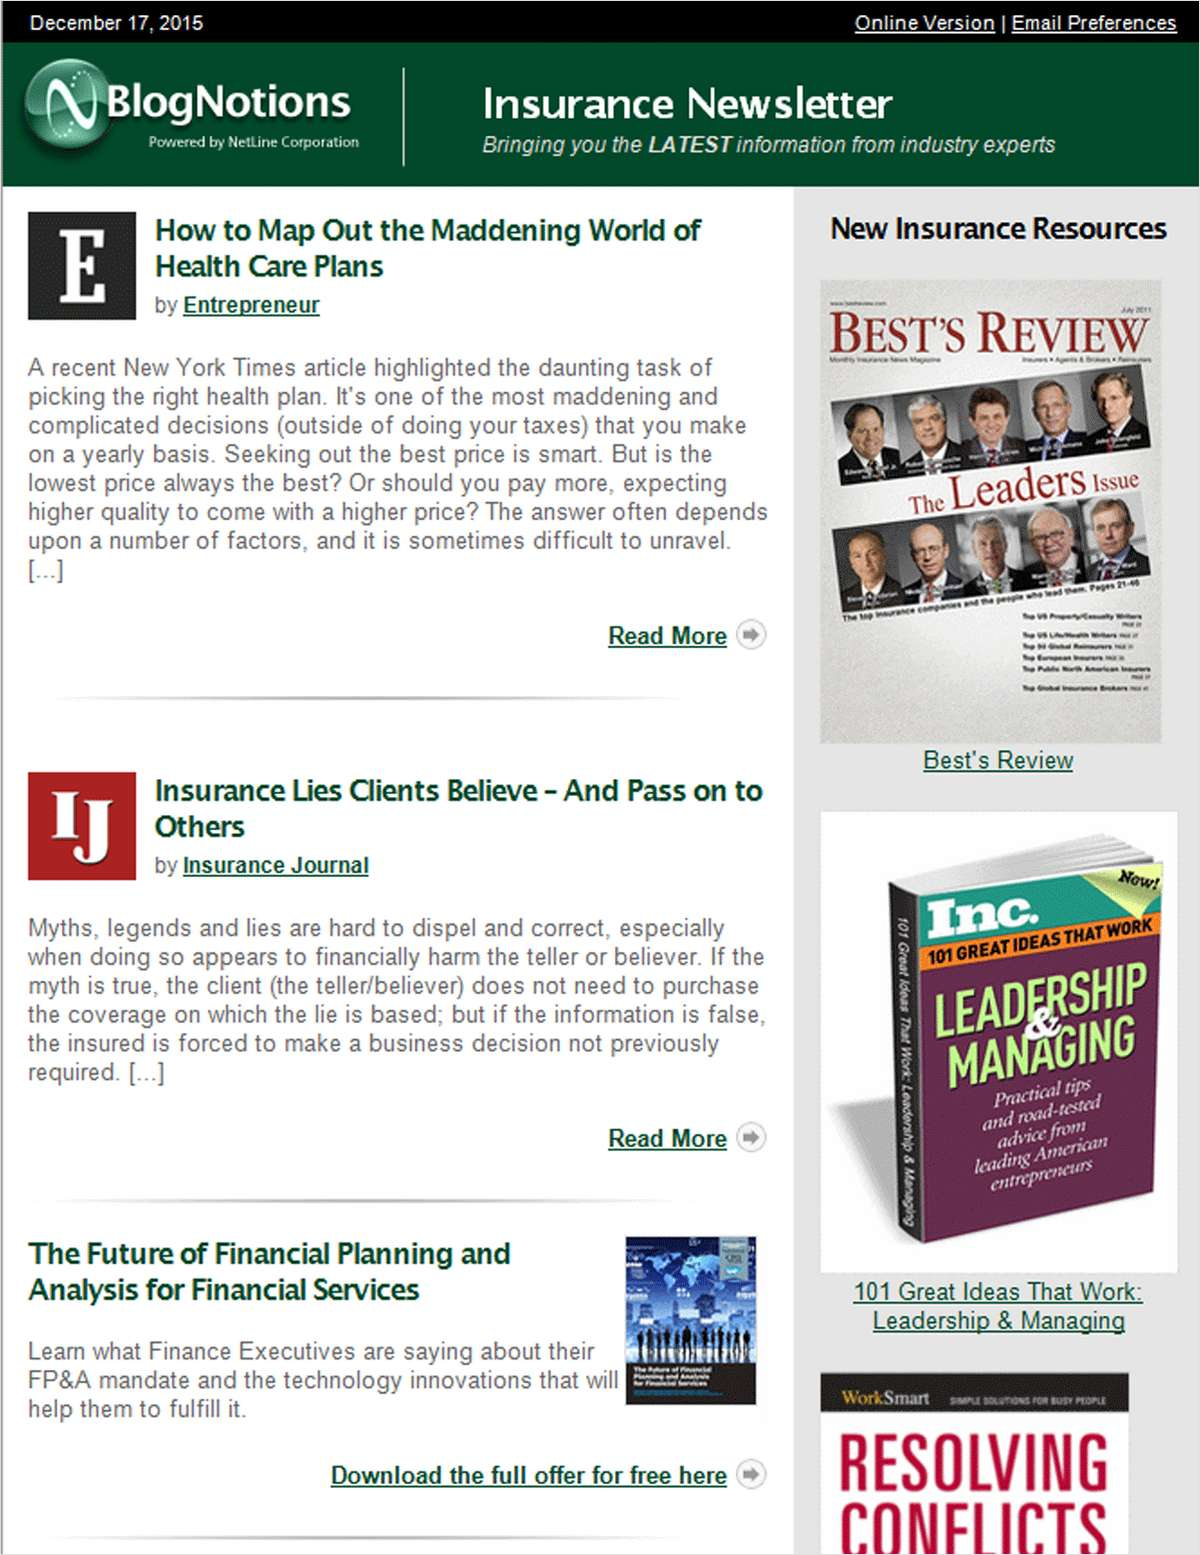 BlogNotions Insurance Newsletter: Monthly eNewsletter Featuring Blogs from Industry Experts